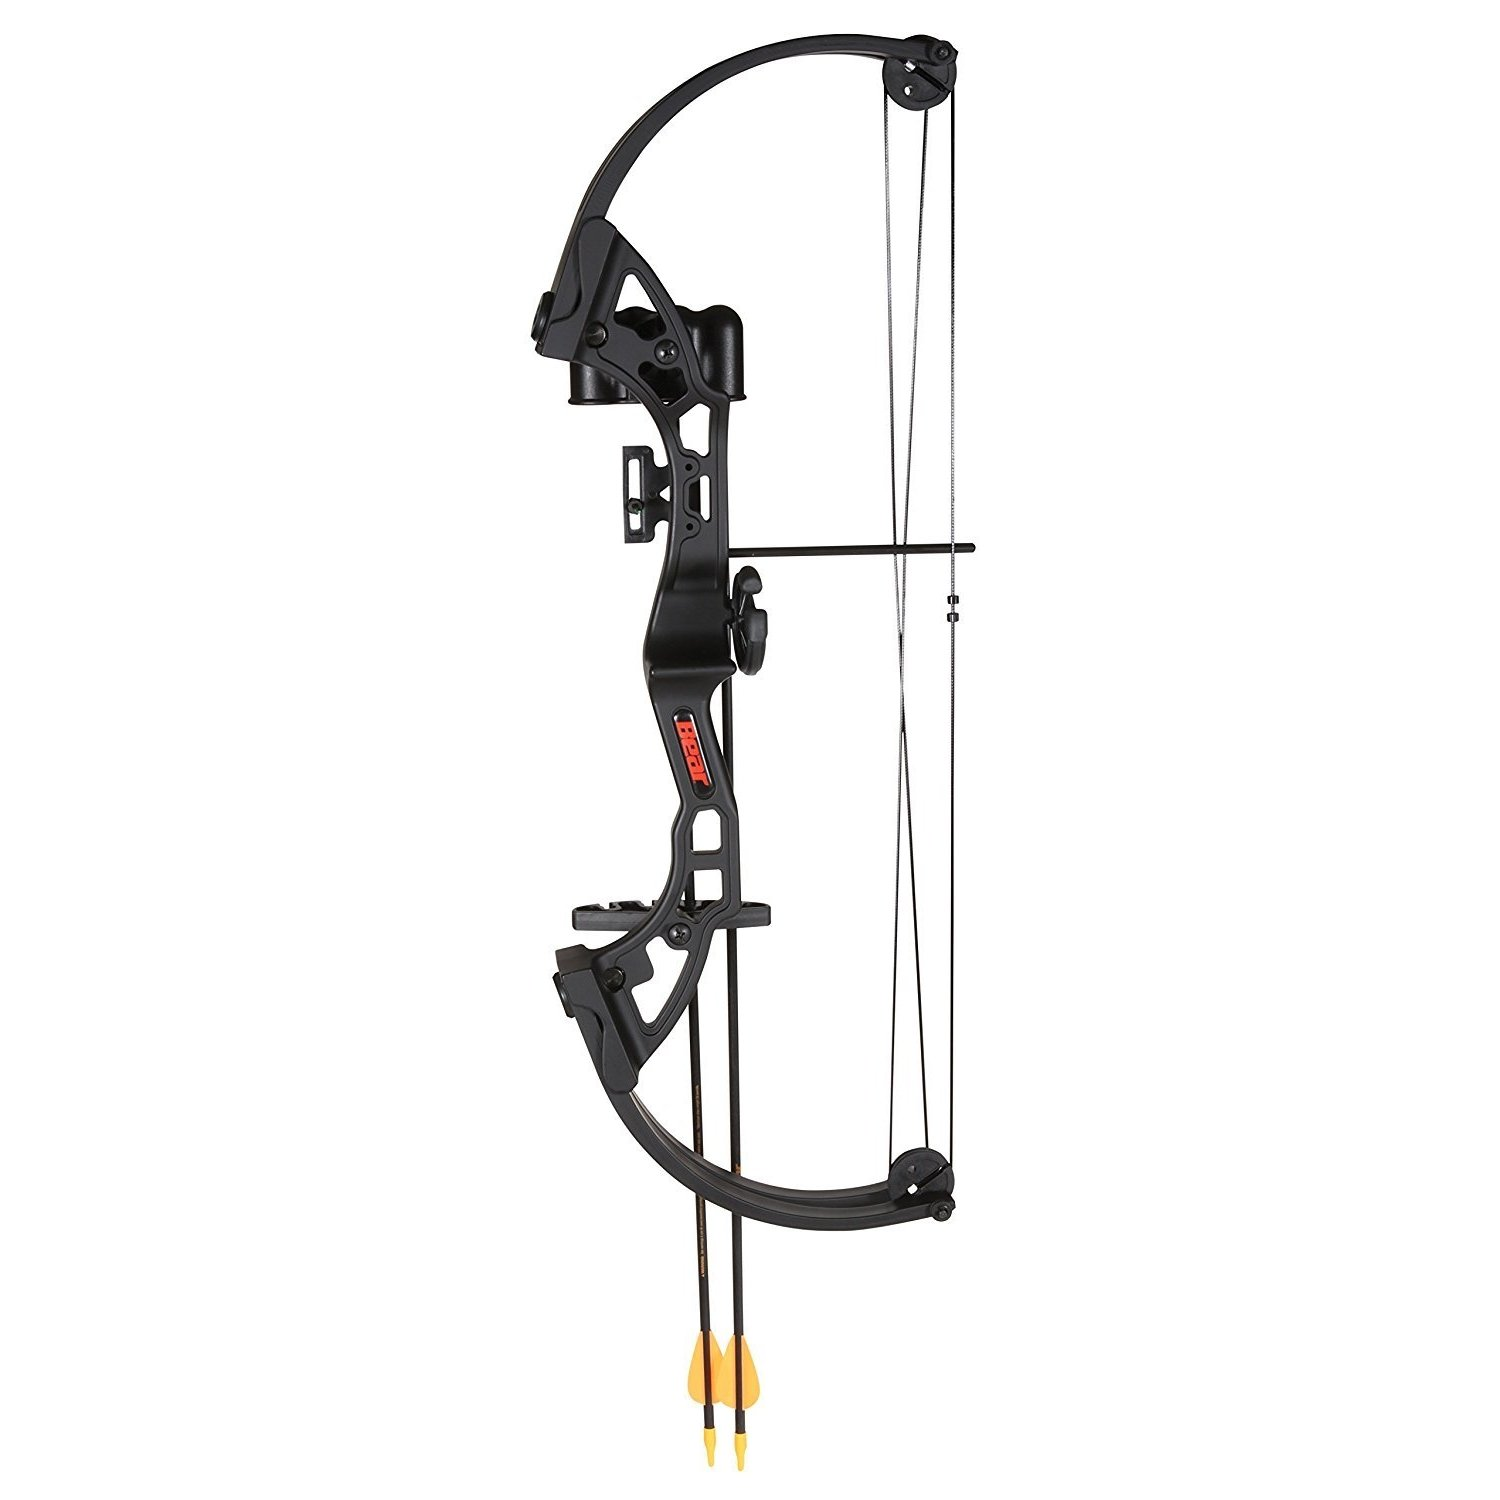 By-Ear Archery Compound Bow, Brave Youth Set Girls Boys Compound Bow Kids, Black by By-Ear Archery (Image #1)